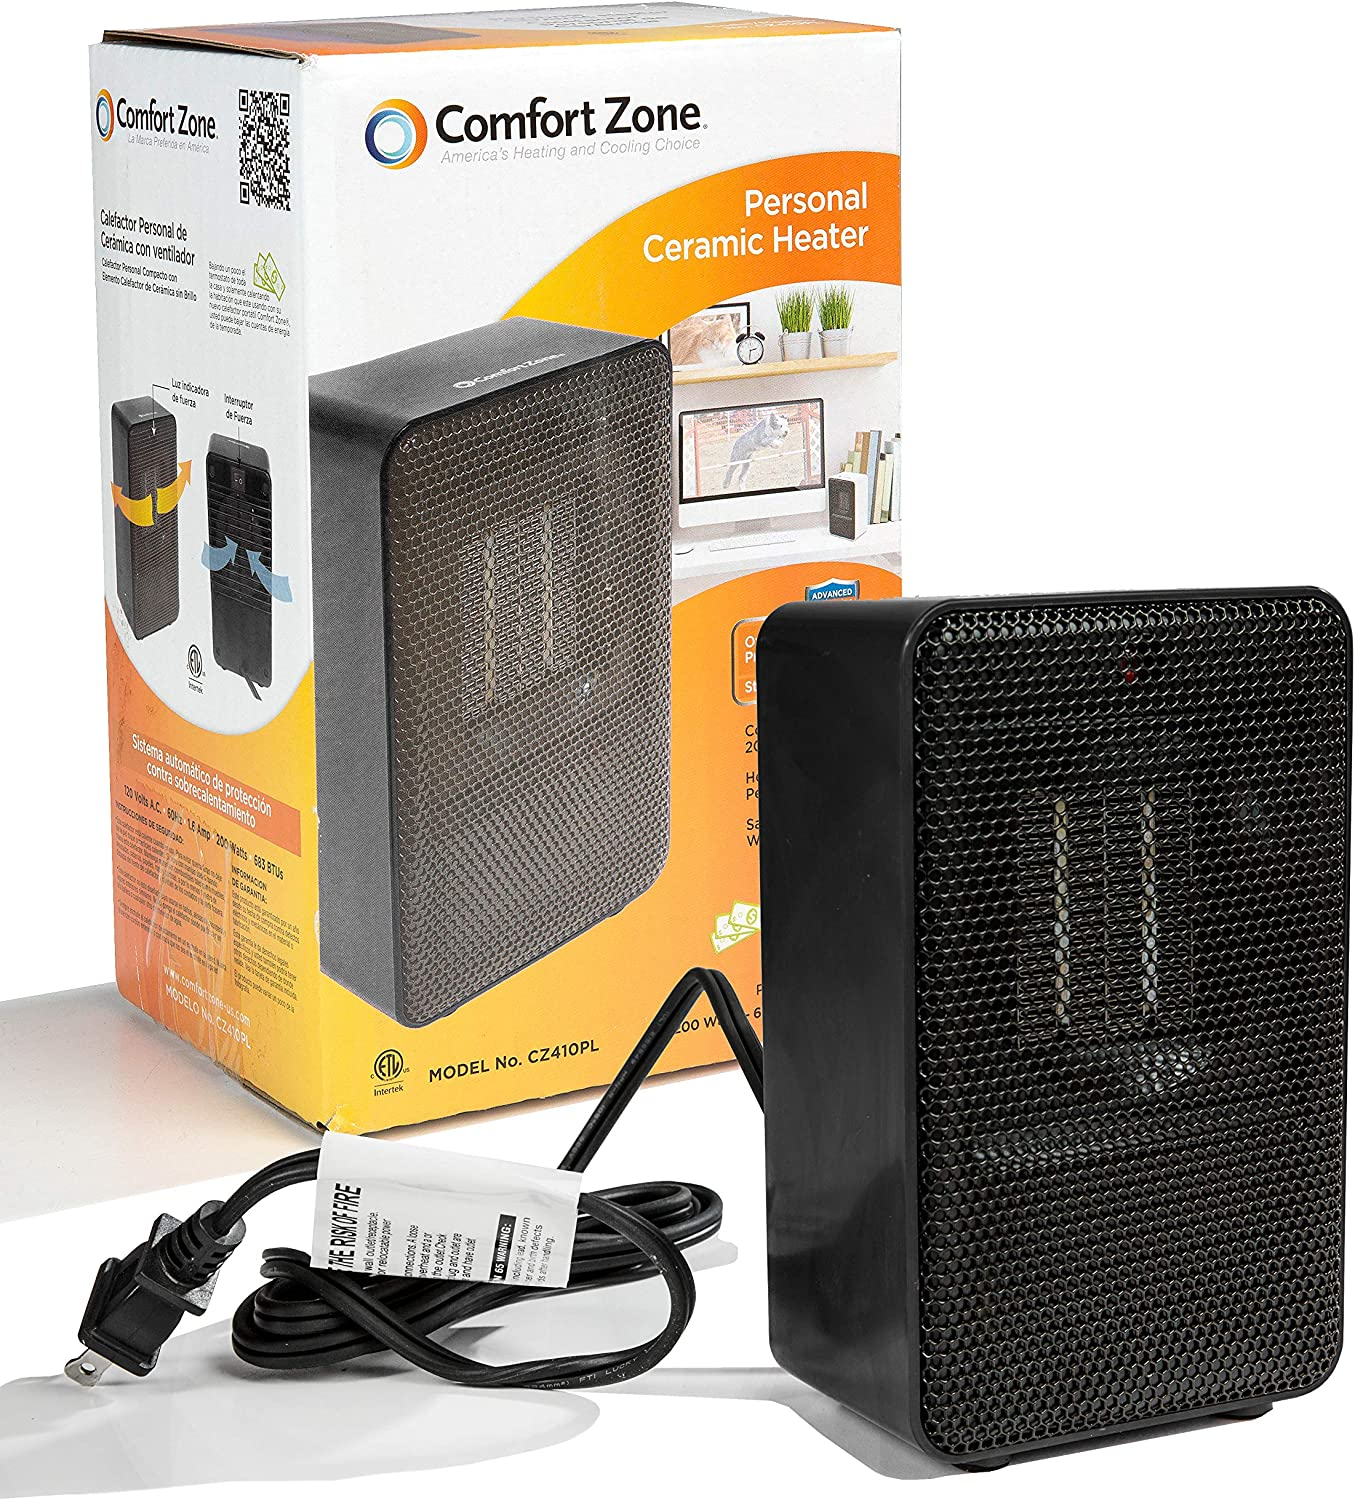 Comfort Zone Personal Ceramic Heater, Black